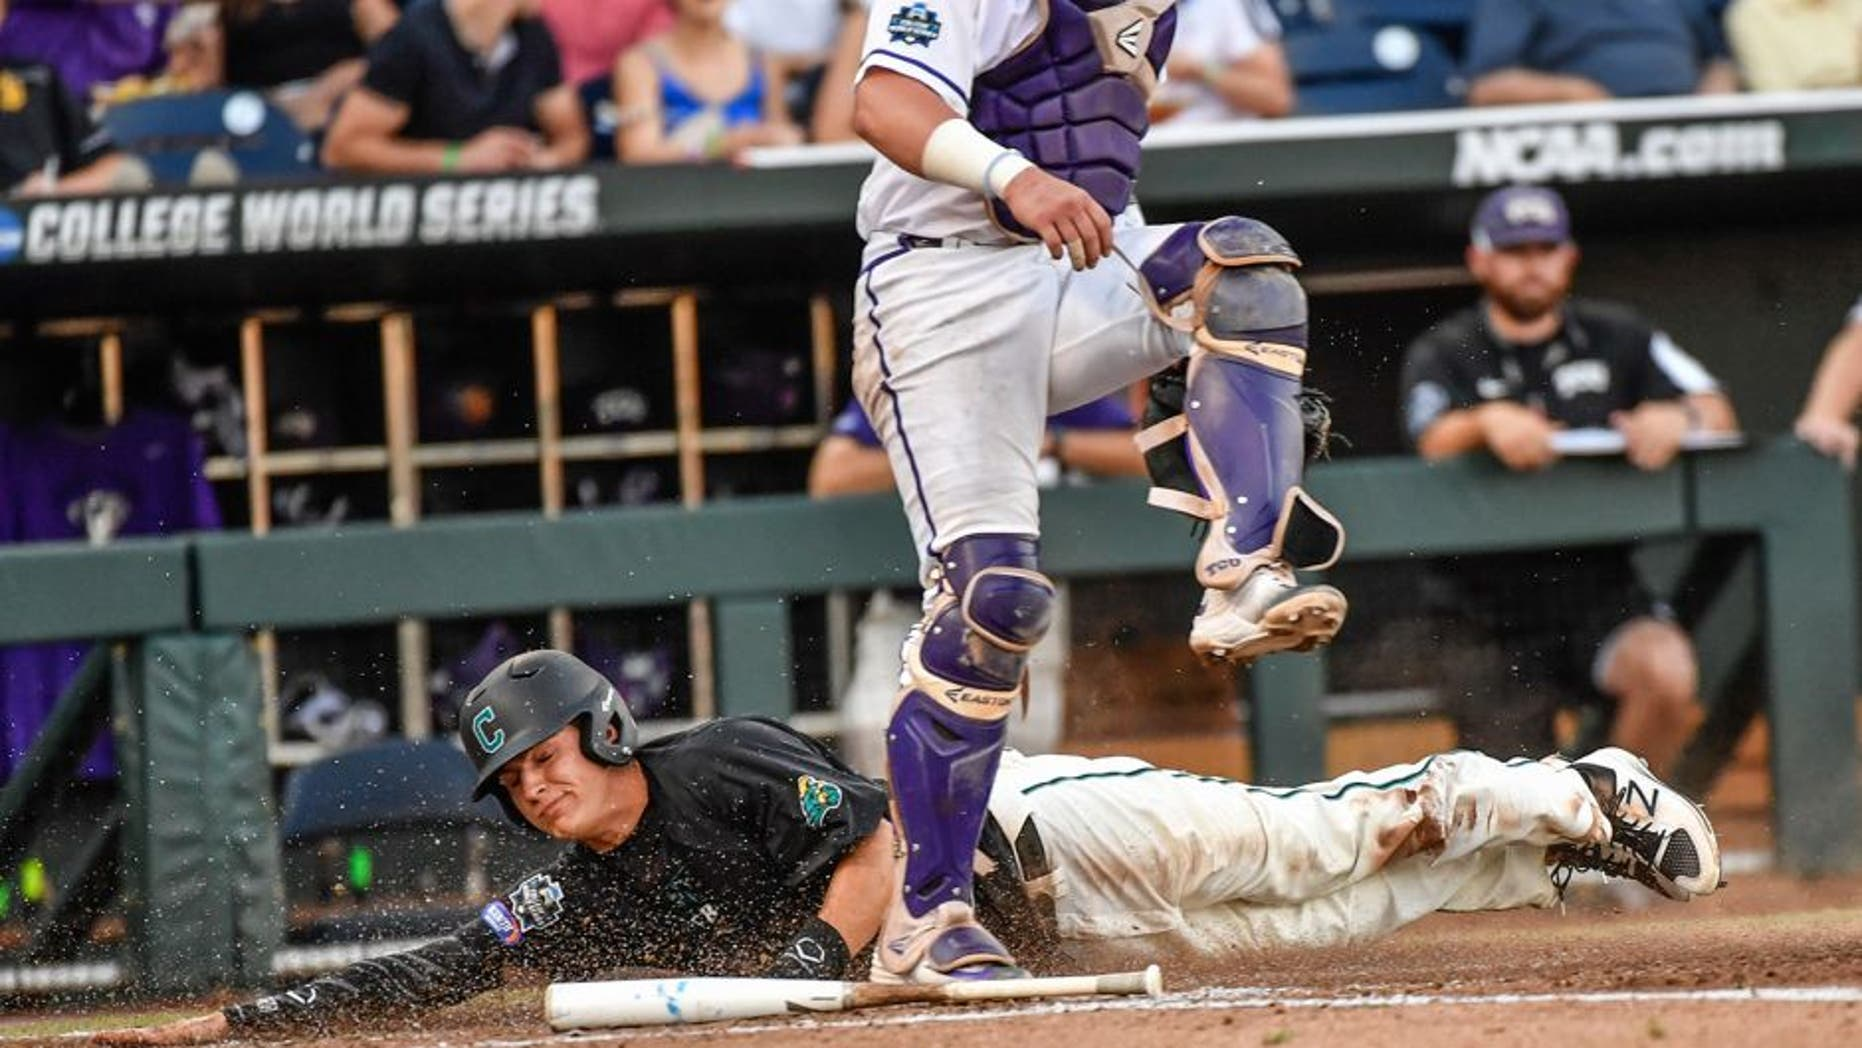 Coastal Carolina's Anthony Marks, bottom, scores behind TCU catcher Evan Skoug on a bunt by Billy Cooke during the third inning of an NCAA College World Series baseball game in Omaha, Neb., Friday, June 24, 2016. (AP Photo/Ted Kirk)